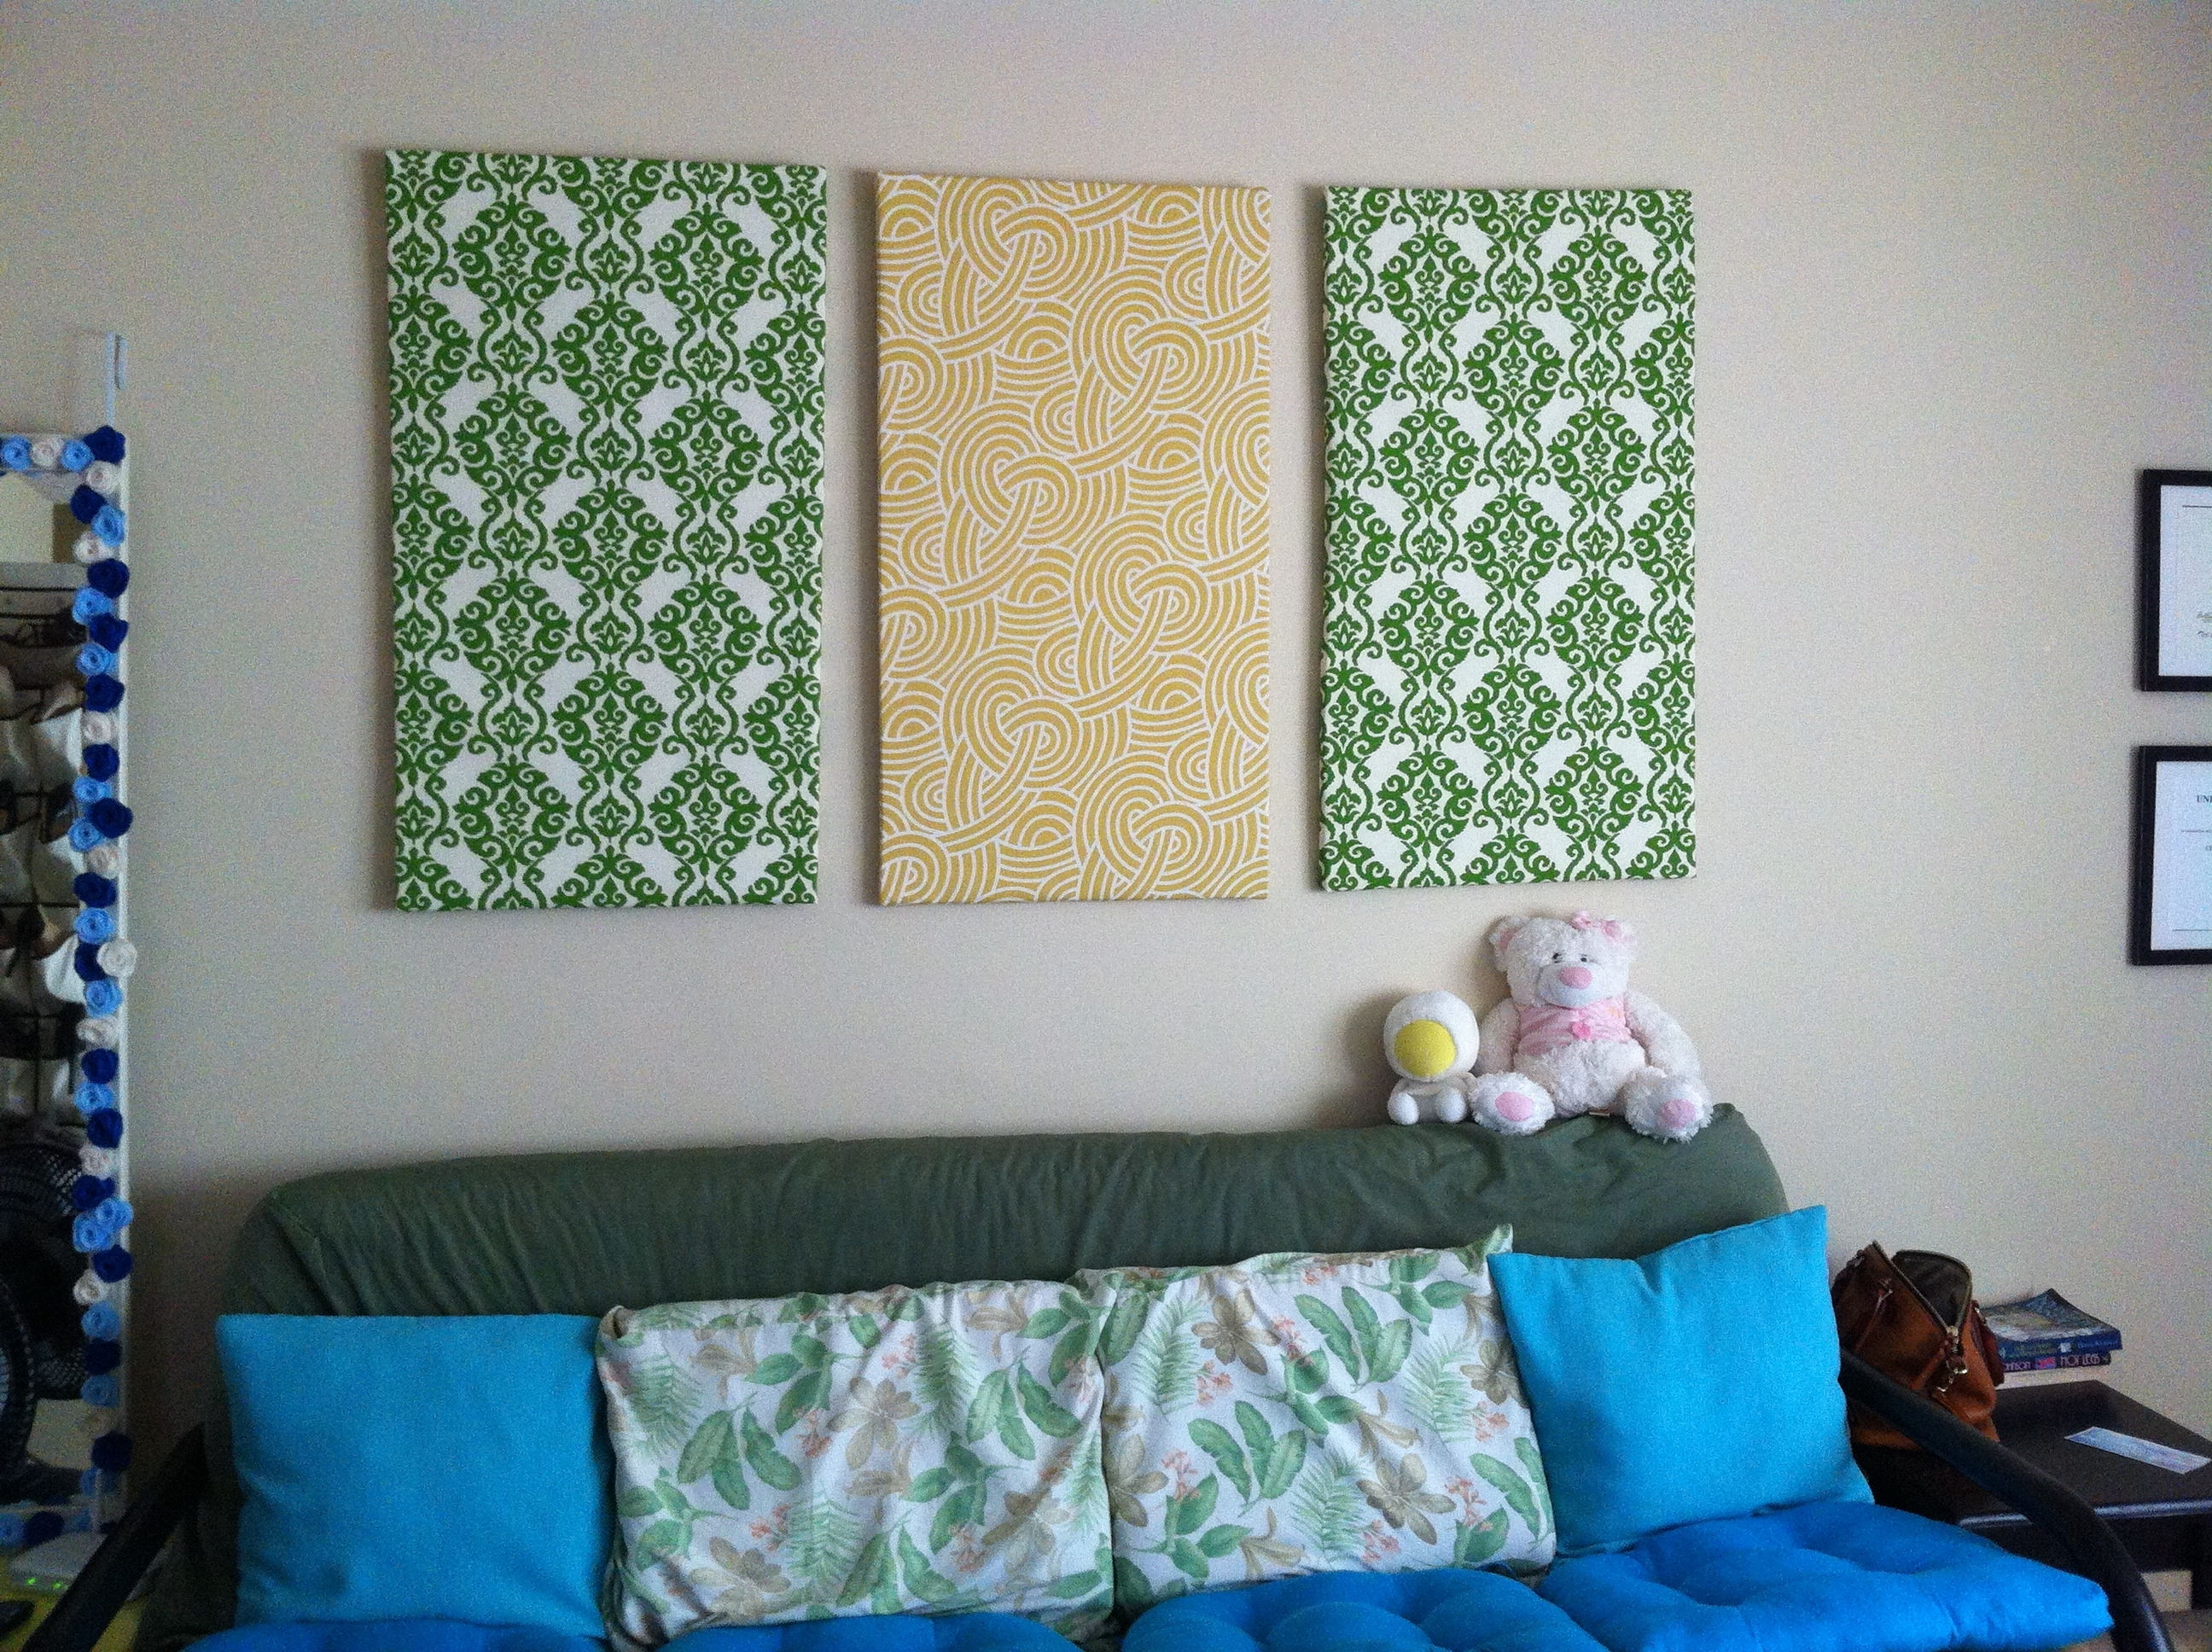 Art: Diy Fabric Wall Art With Regard To Most Recent Canvas Wall Art With Fabric (View 3 of 15)